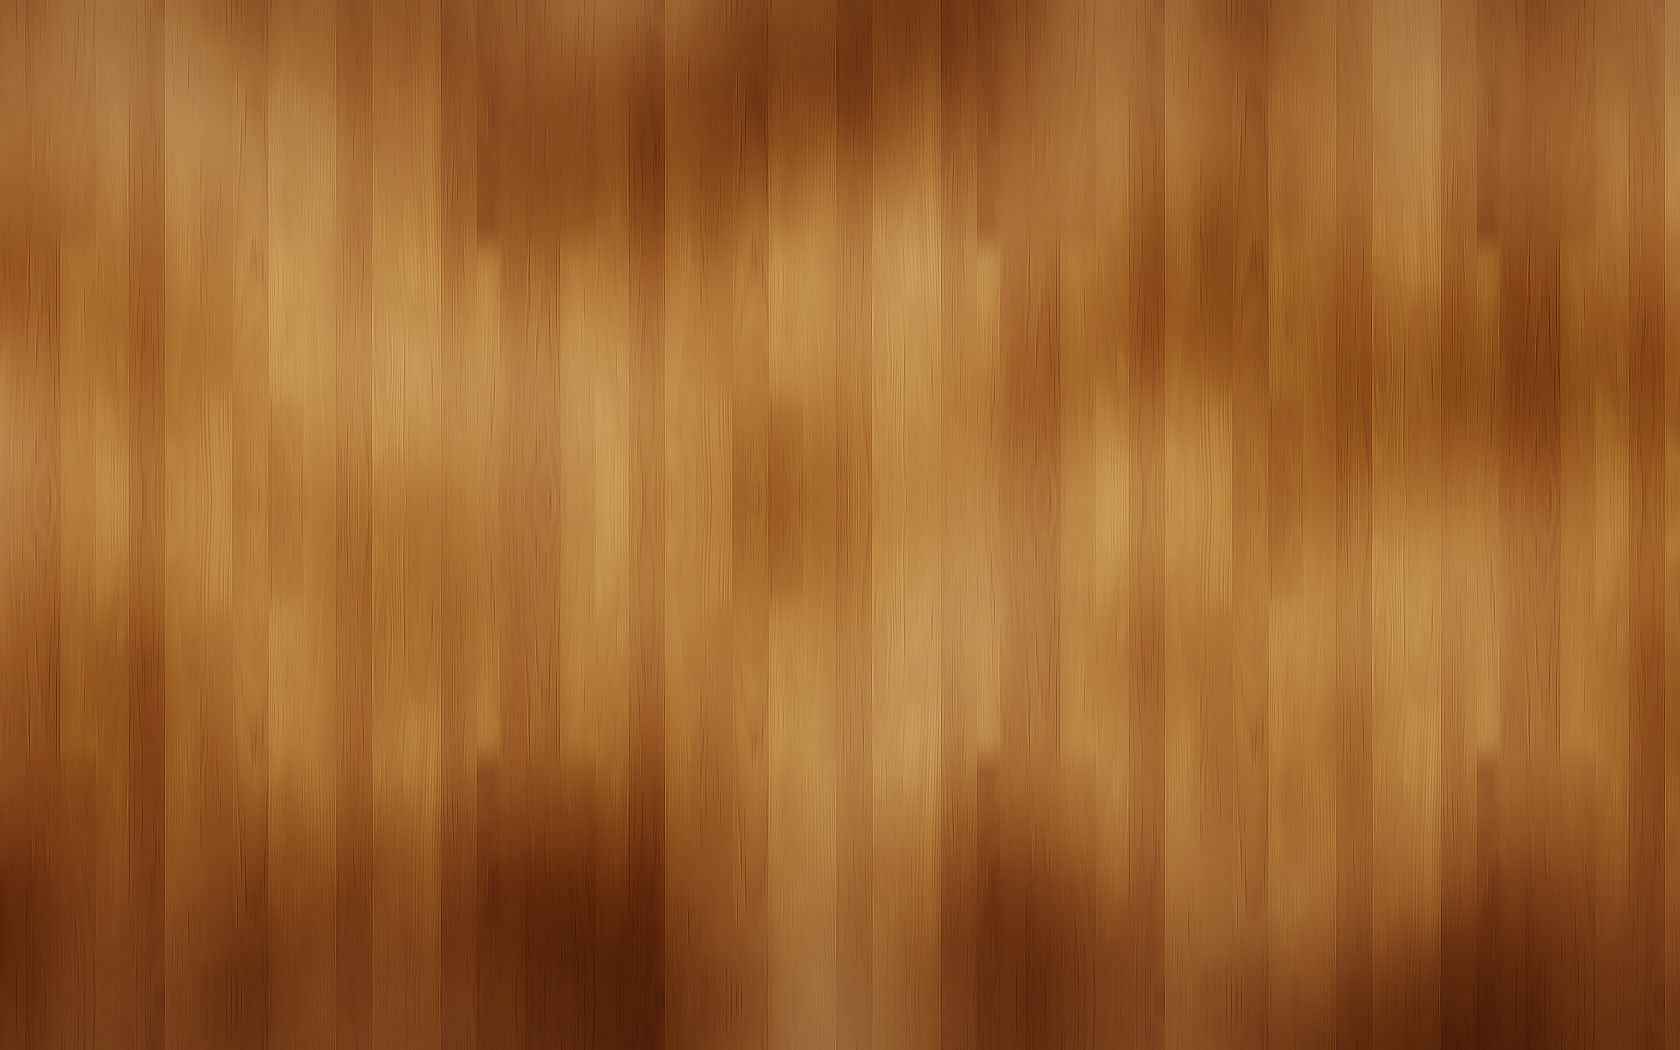 Wood Texture HD Wallpaper for Your Desktop